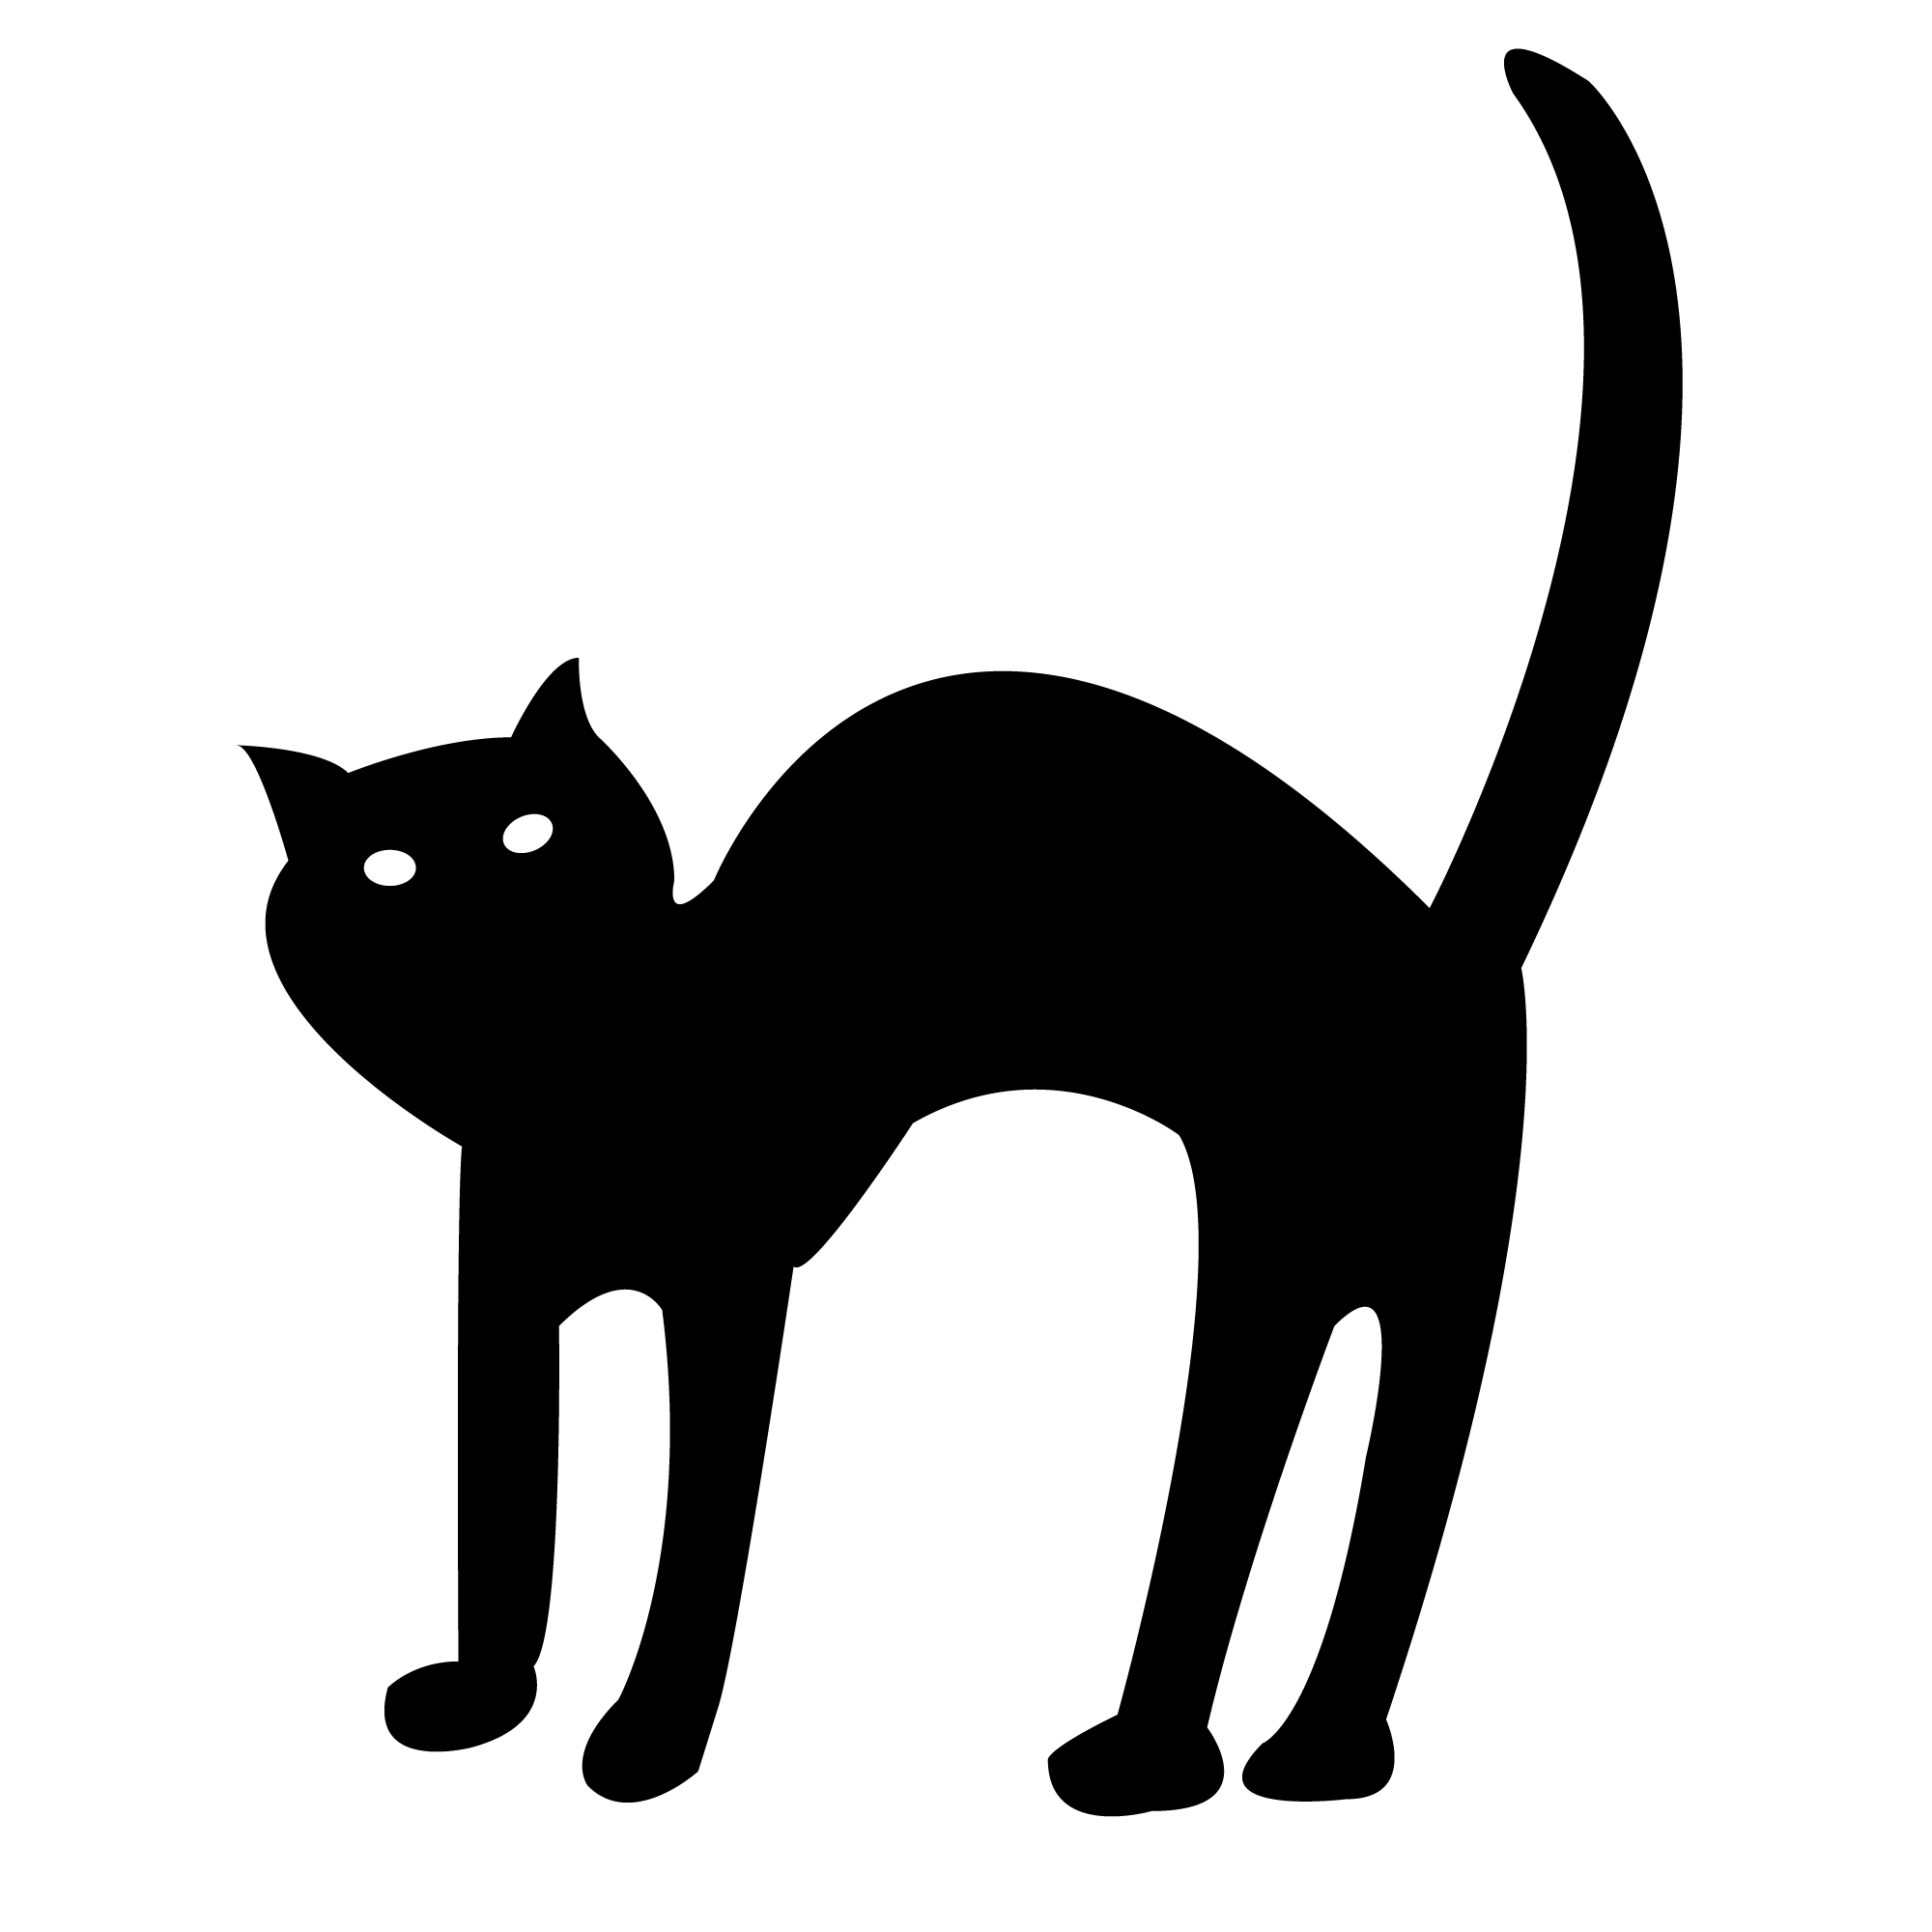 Halloween Black Cat Clipart Clipart Pand-Halloween Black Cat Clipart Clipart Panda Free Clipart Images-9